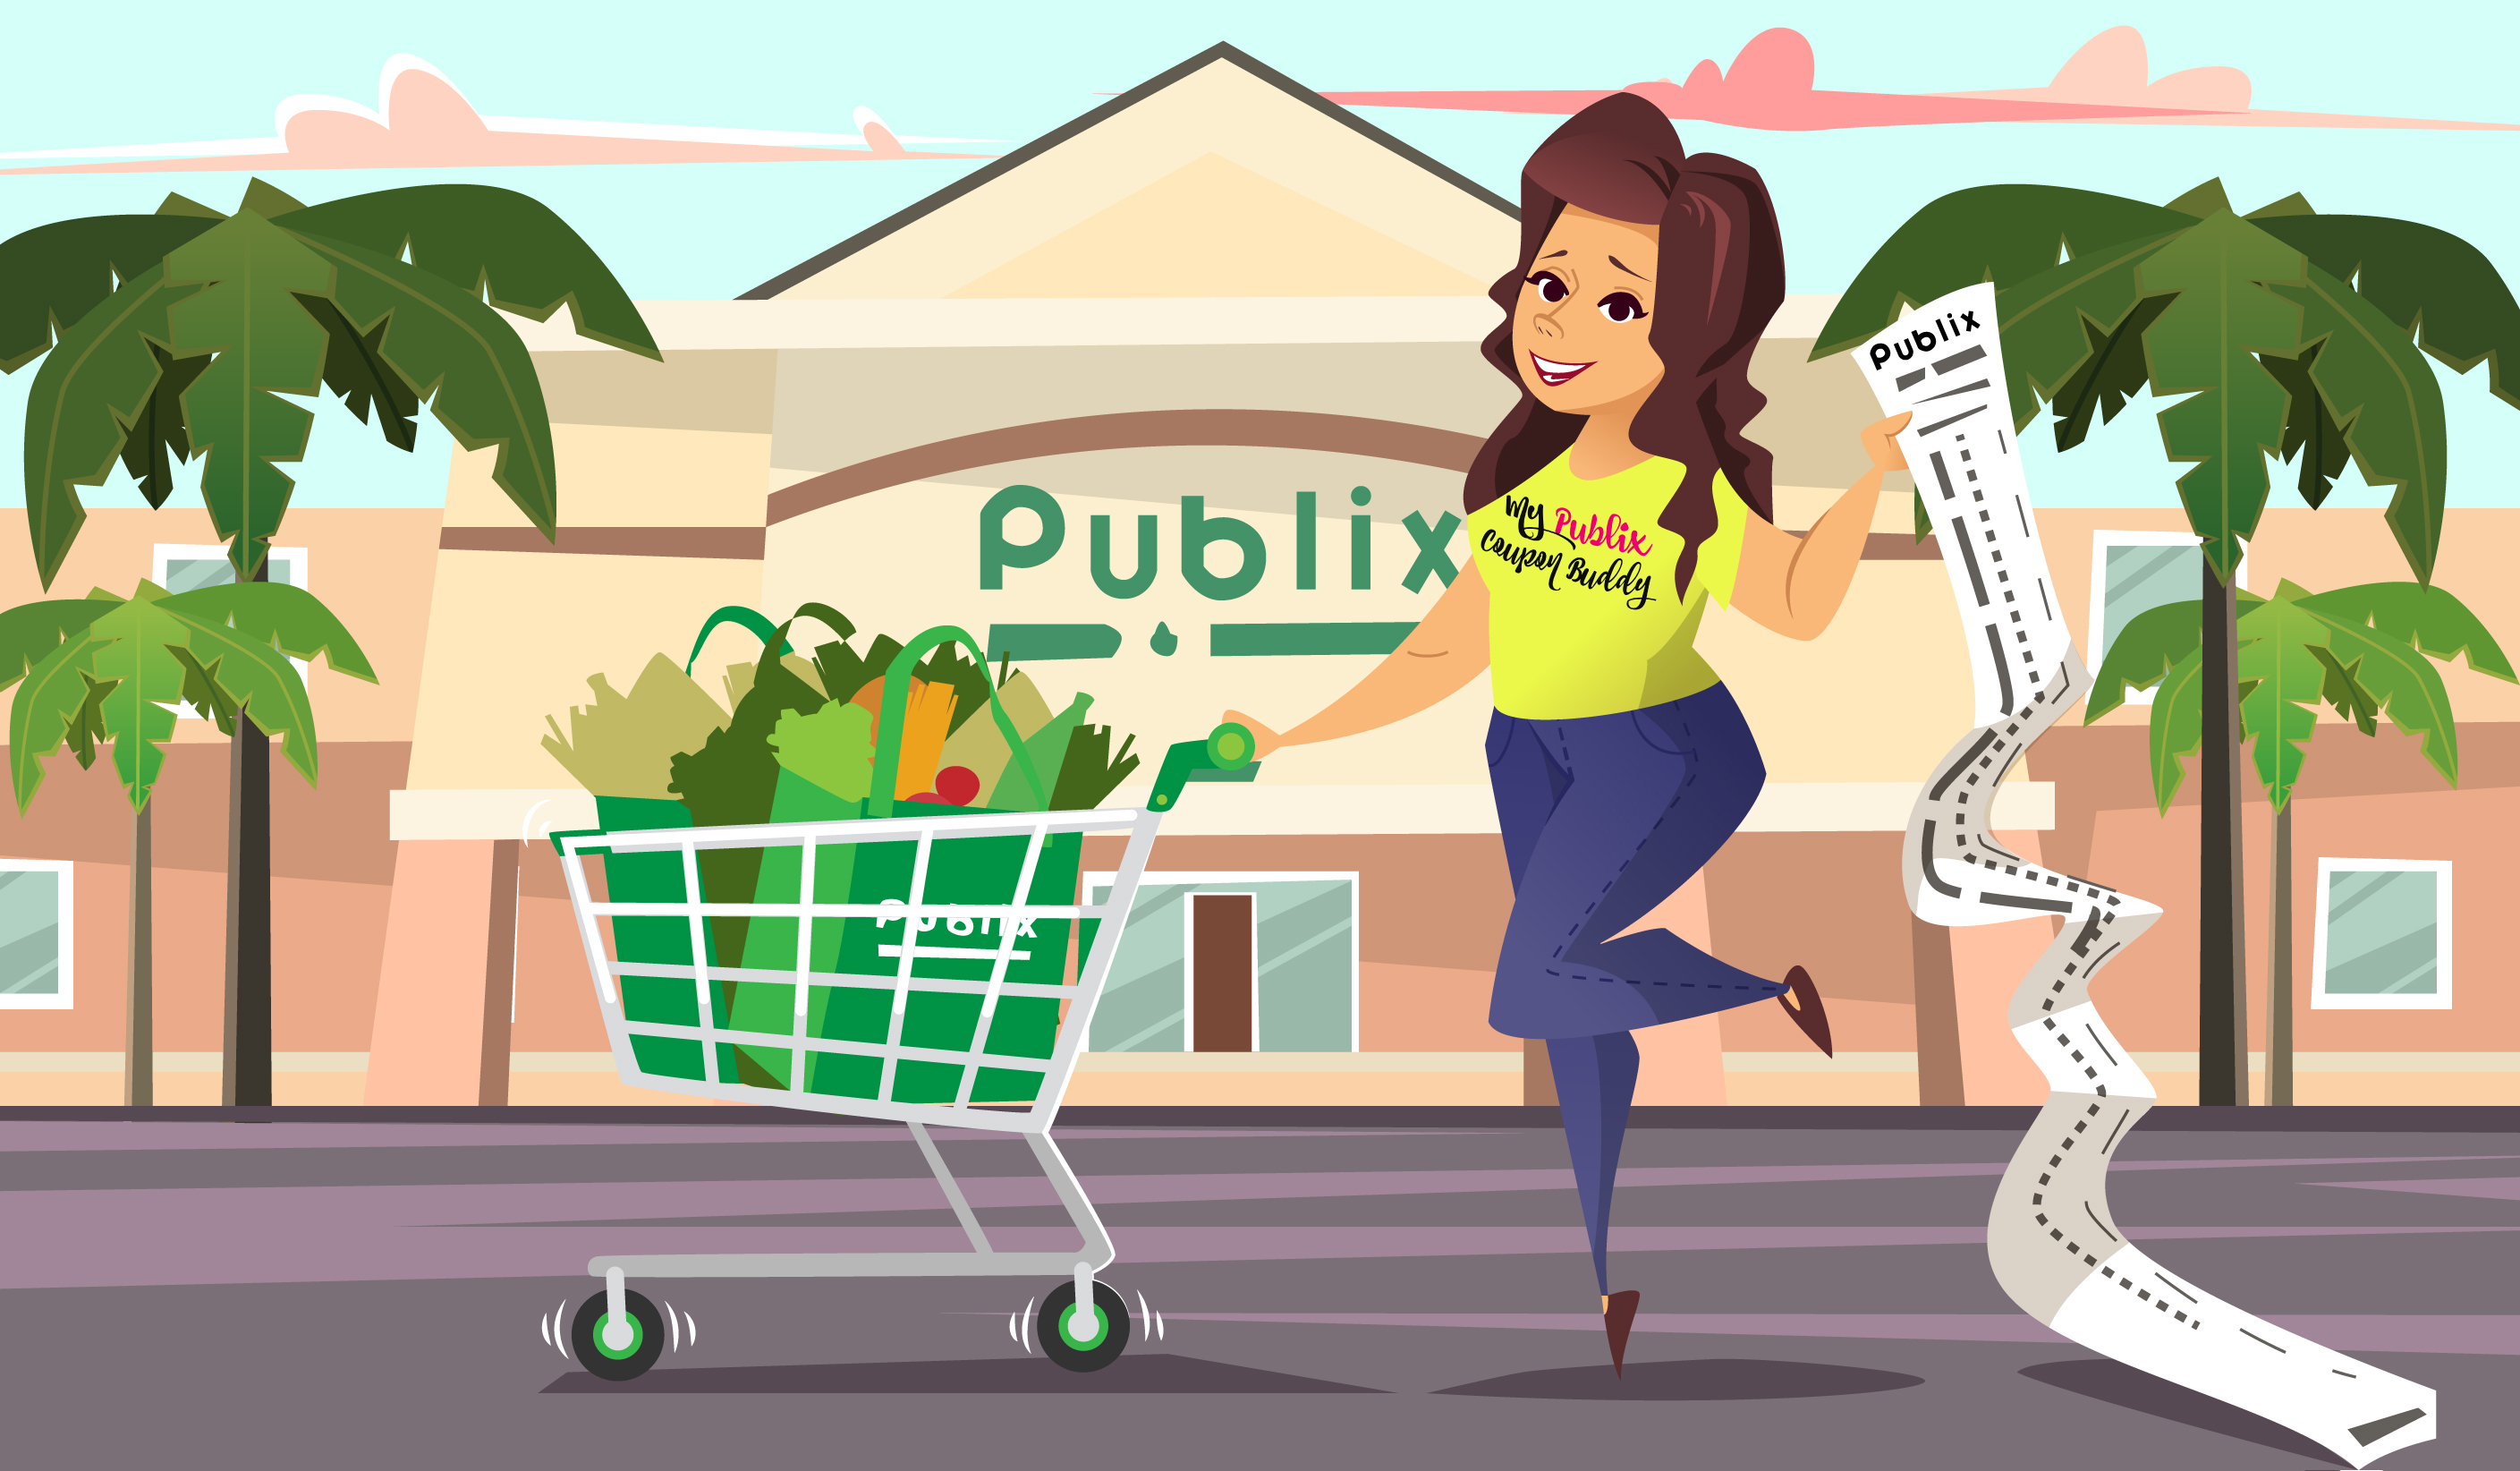 My Publix Coupon Buddy: Publix Couponing help made easy